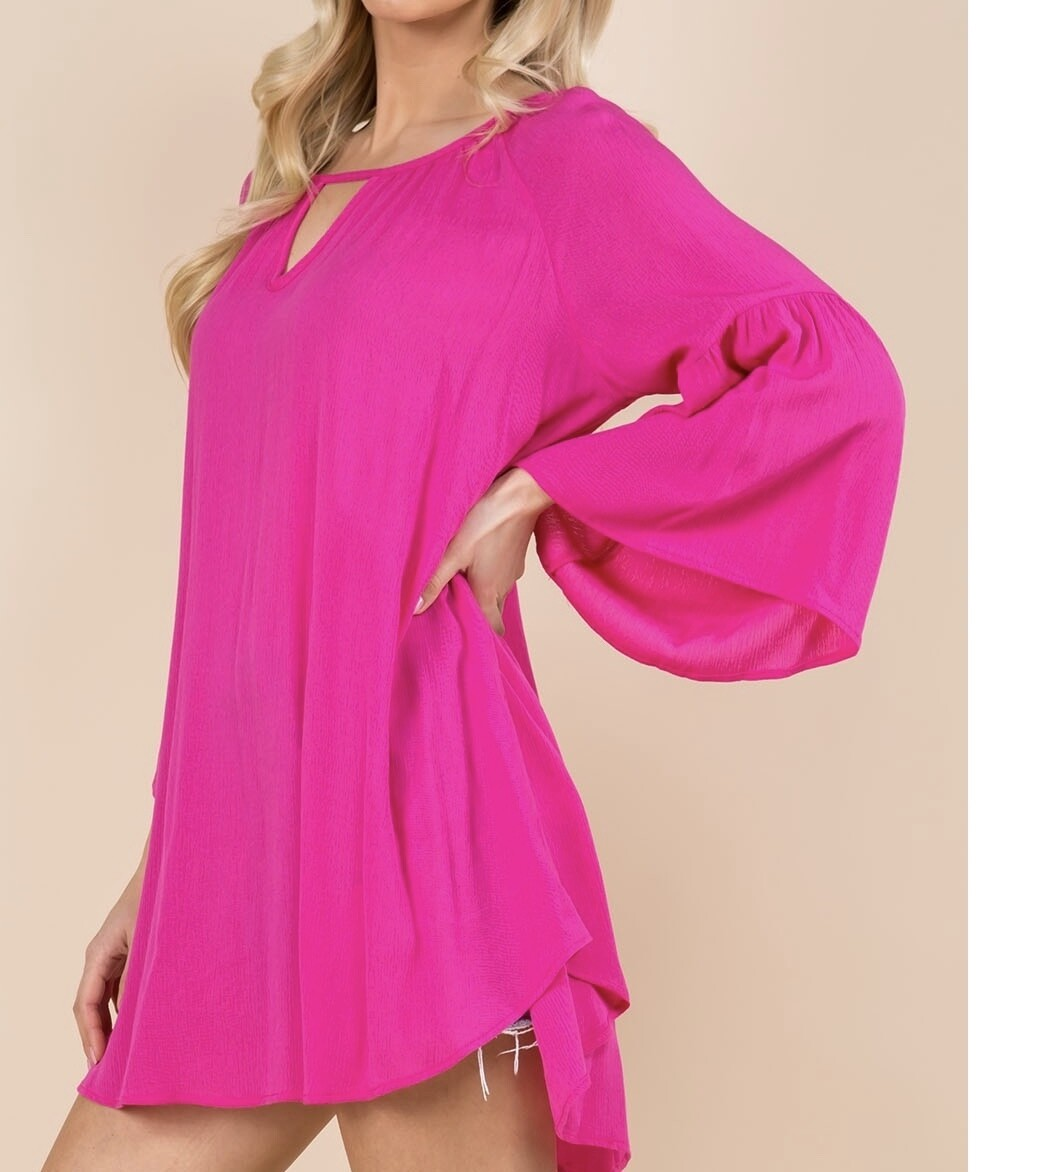 VIS Bell Sleeve Tunic Top (S-3X)